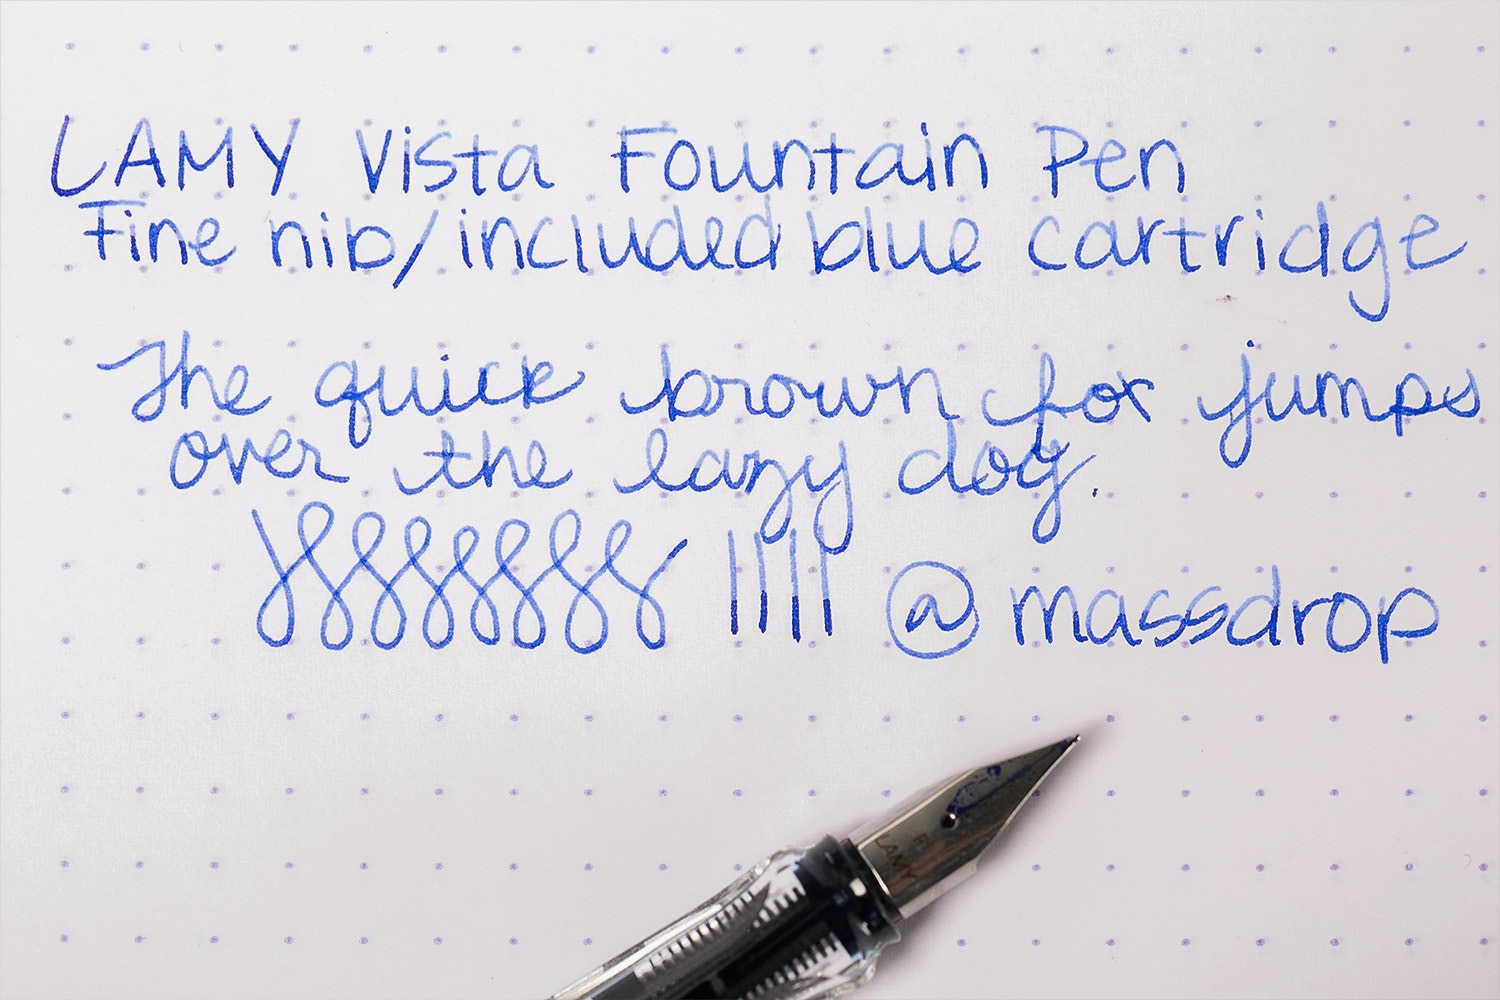 LAMY Vista Fountain Pen (2-Pack)